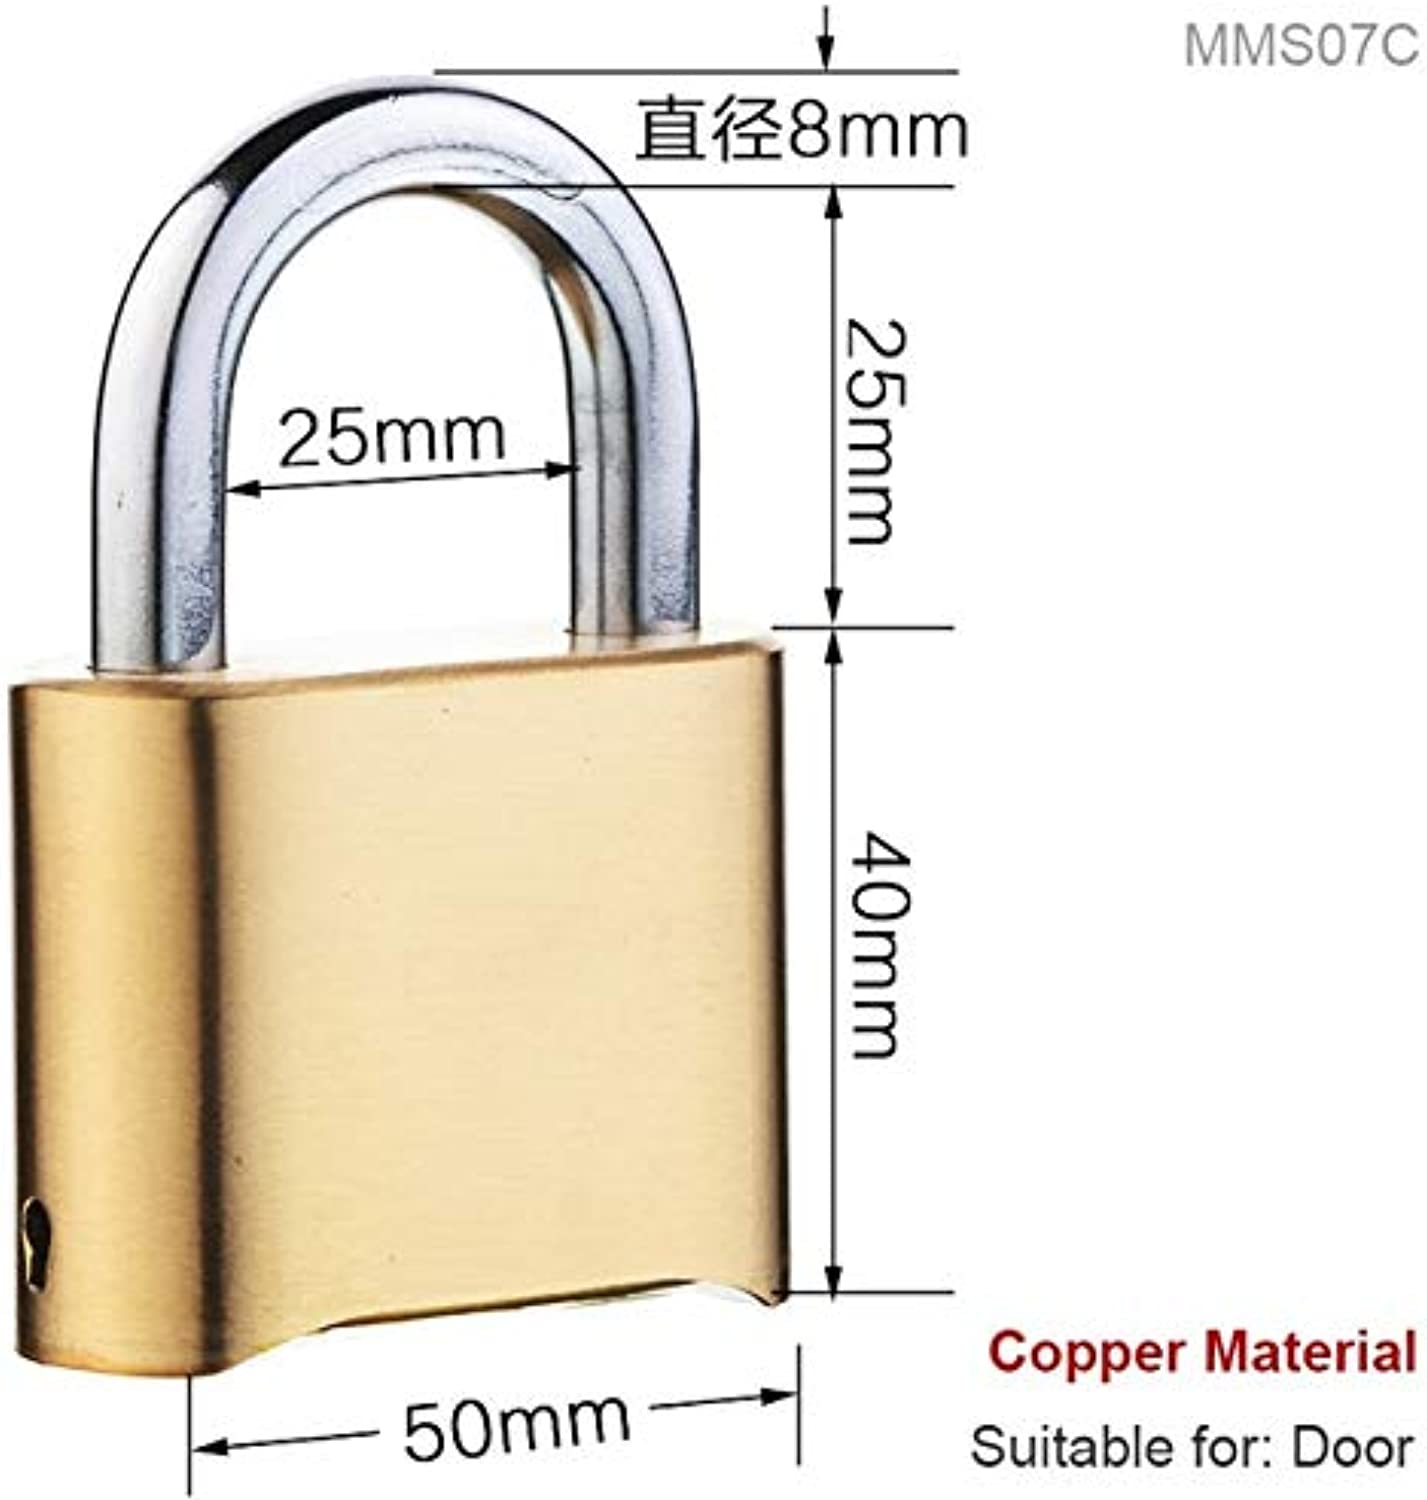 Combination 4 Number Code Security Anti Rust Padlock Set for Gym Sports Fence School Employee Locker Outdoor Fence Padlock  (color  MMS07C)